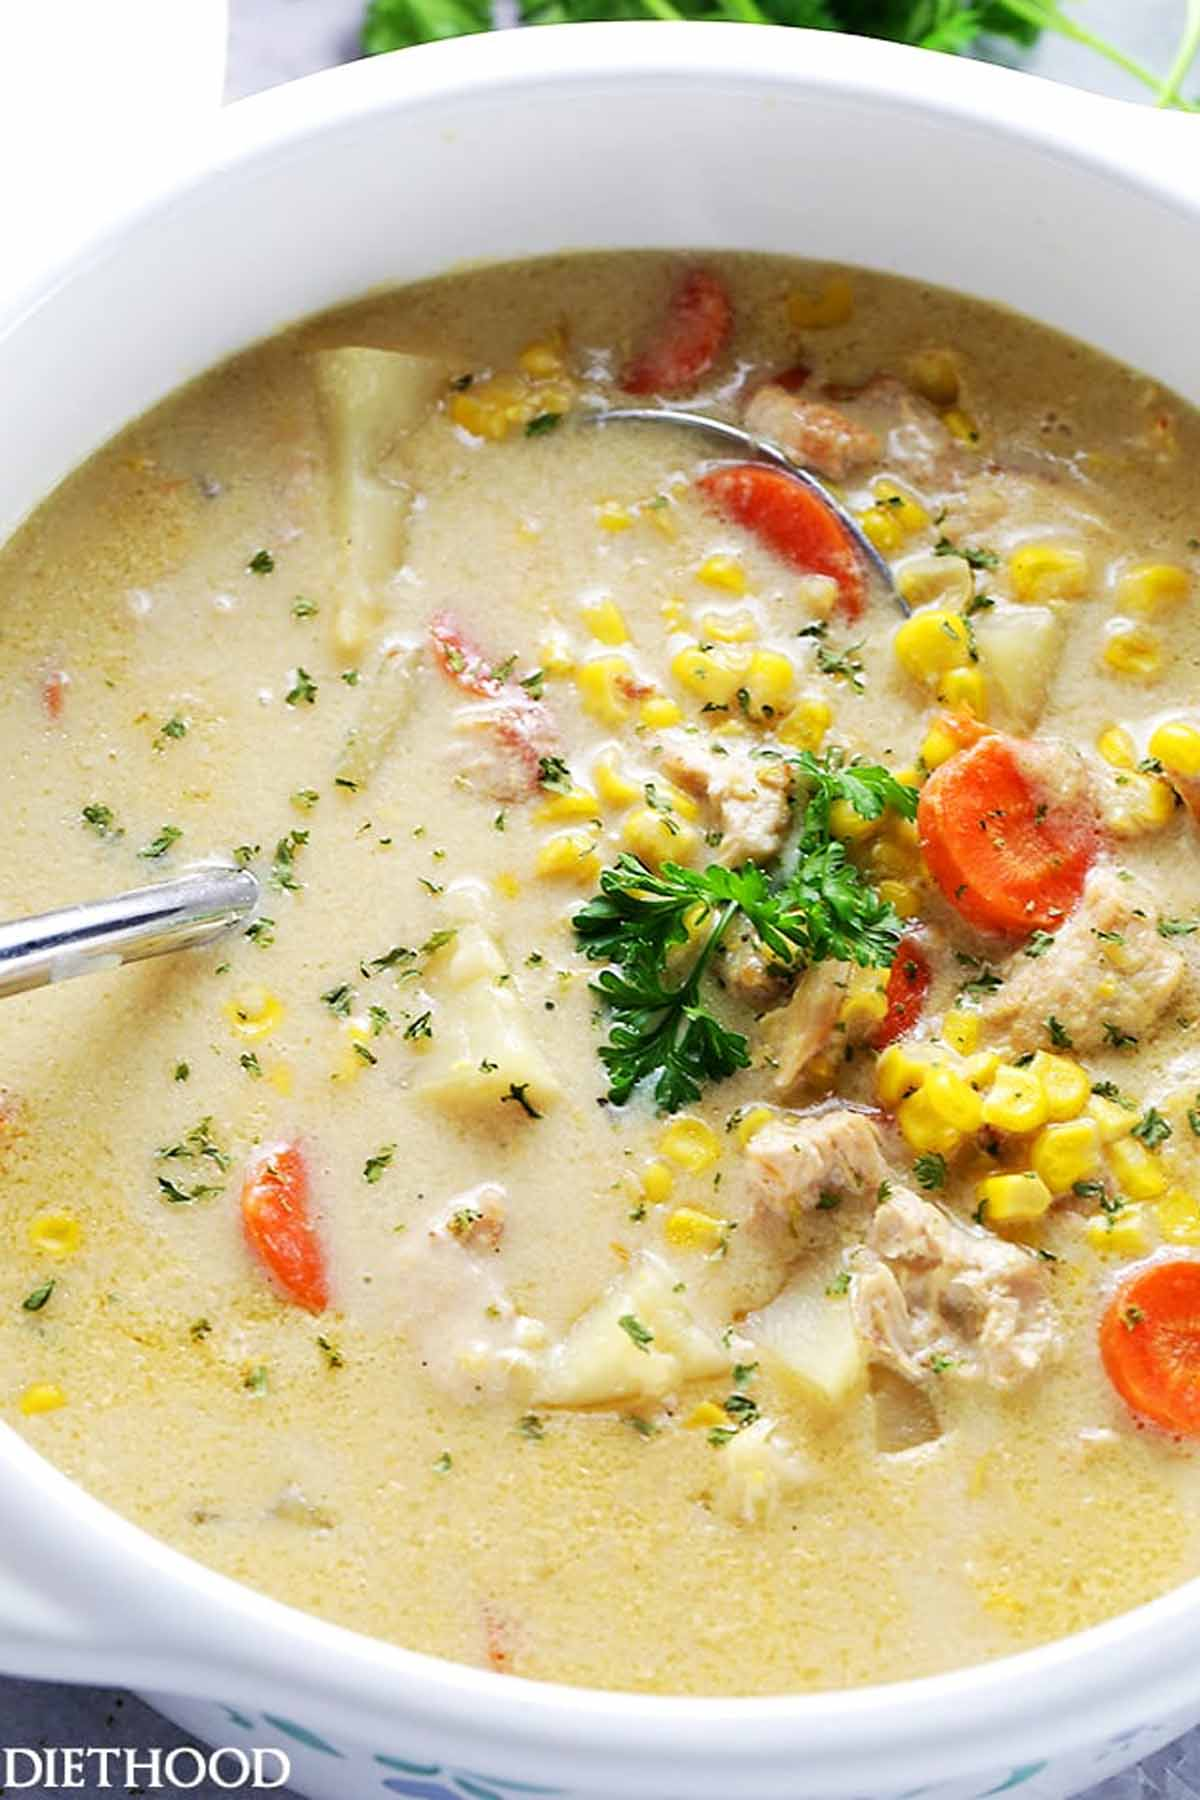 22 Easy Leftover Turkey Recipes - What to Make with ...